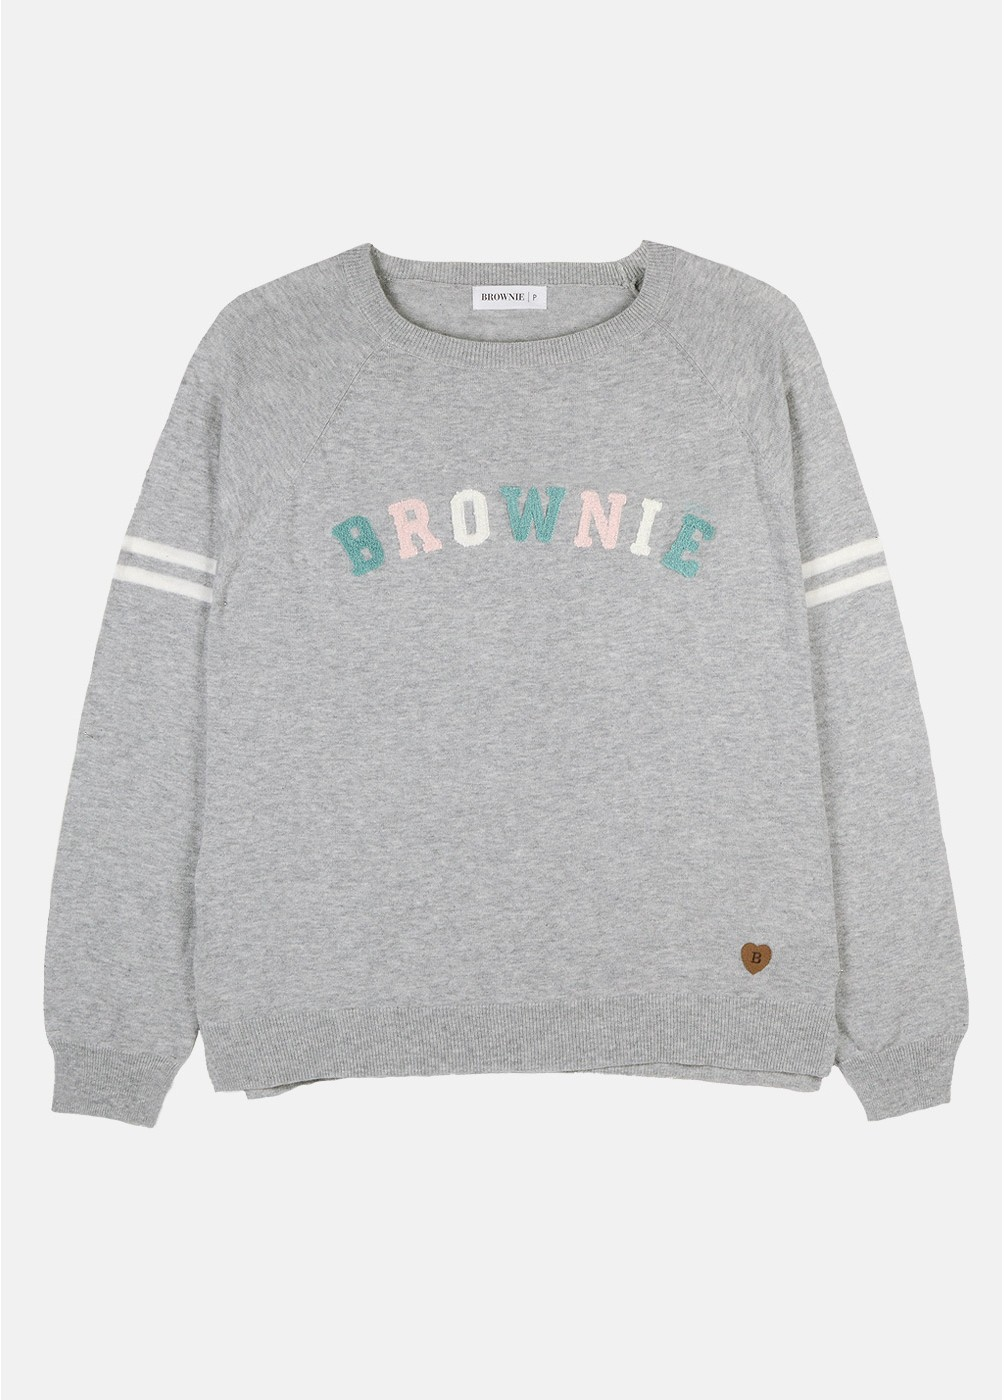 JERSEY LIFE BROWNIE